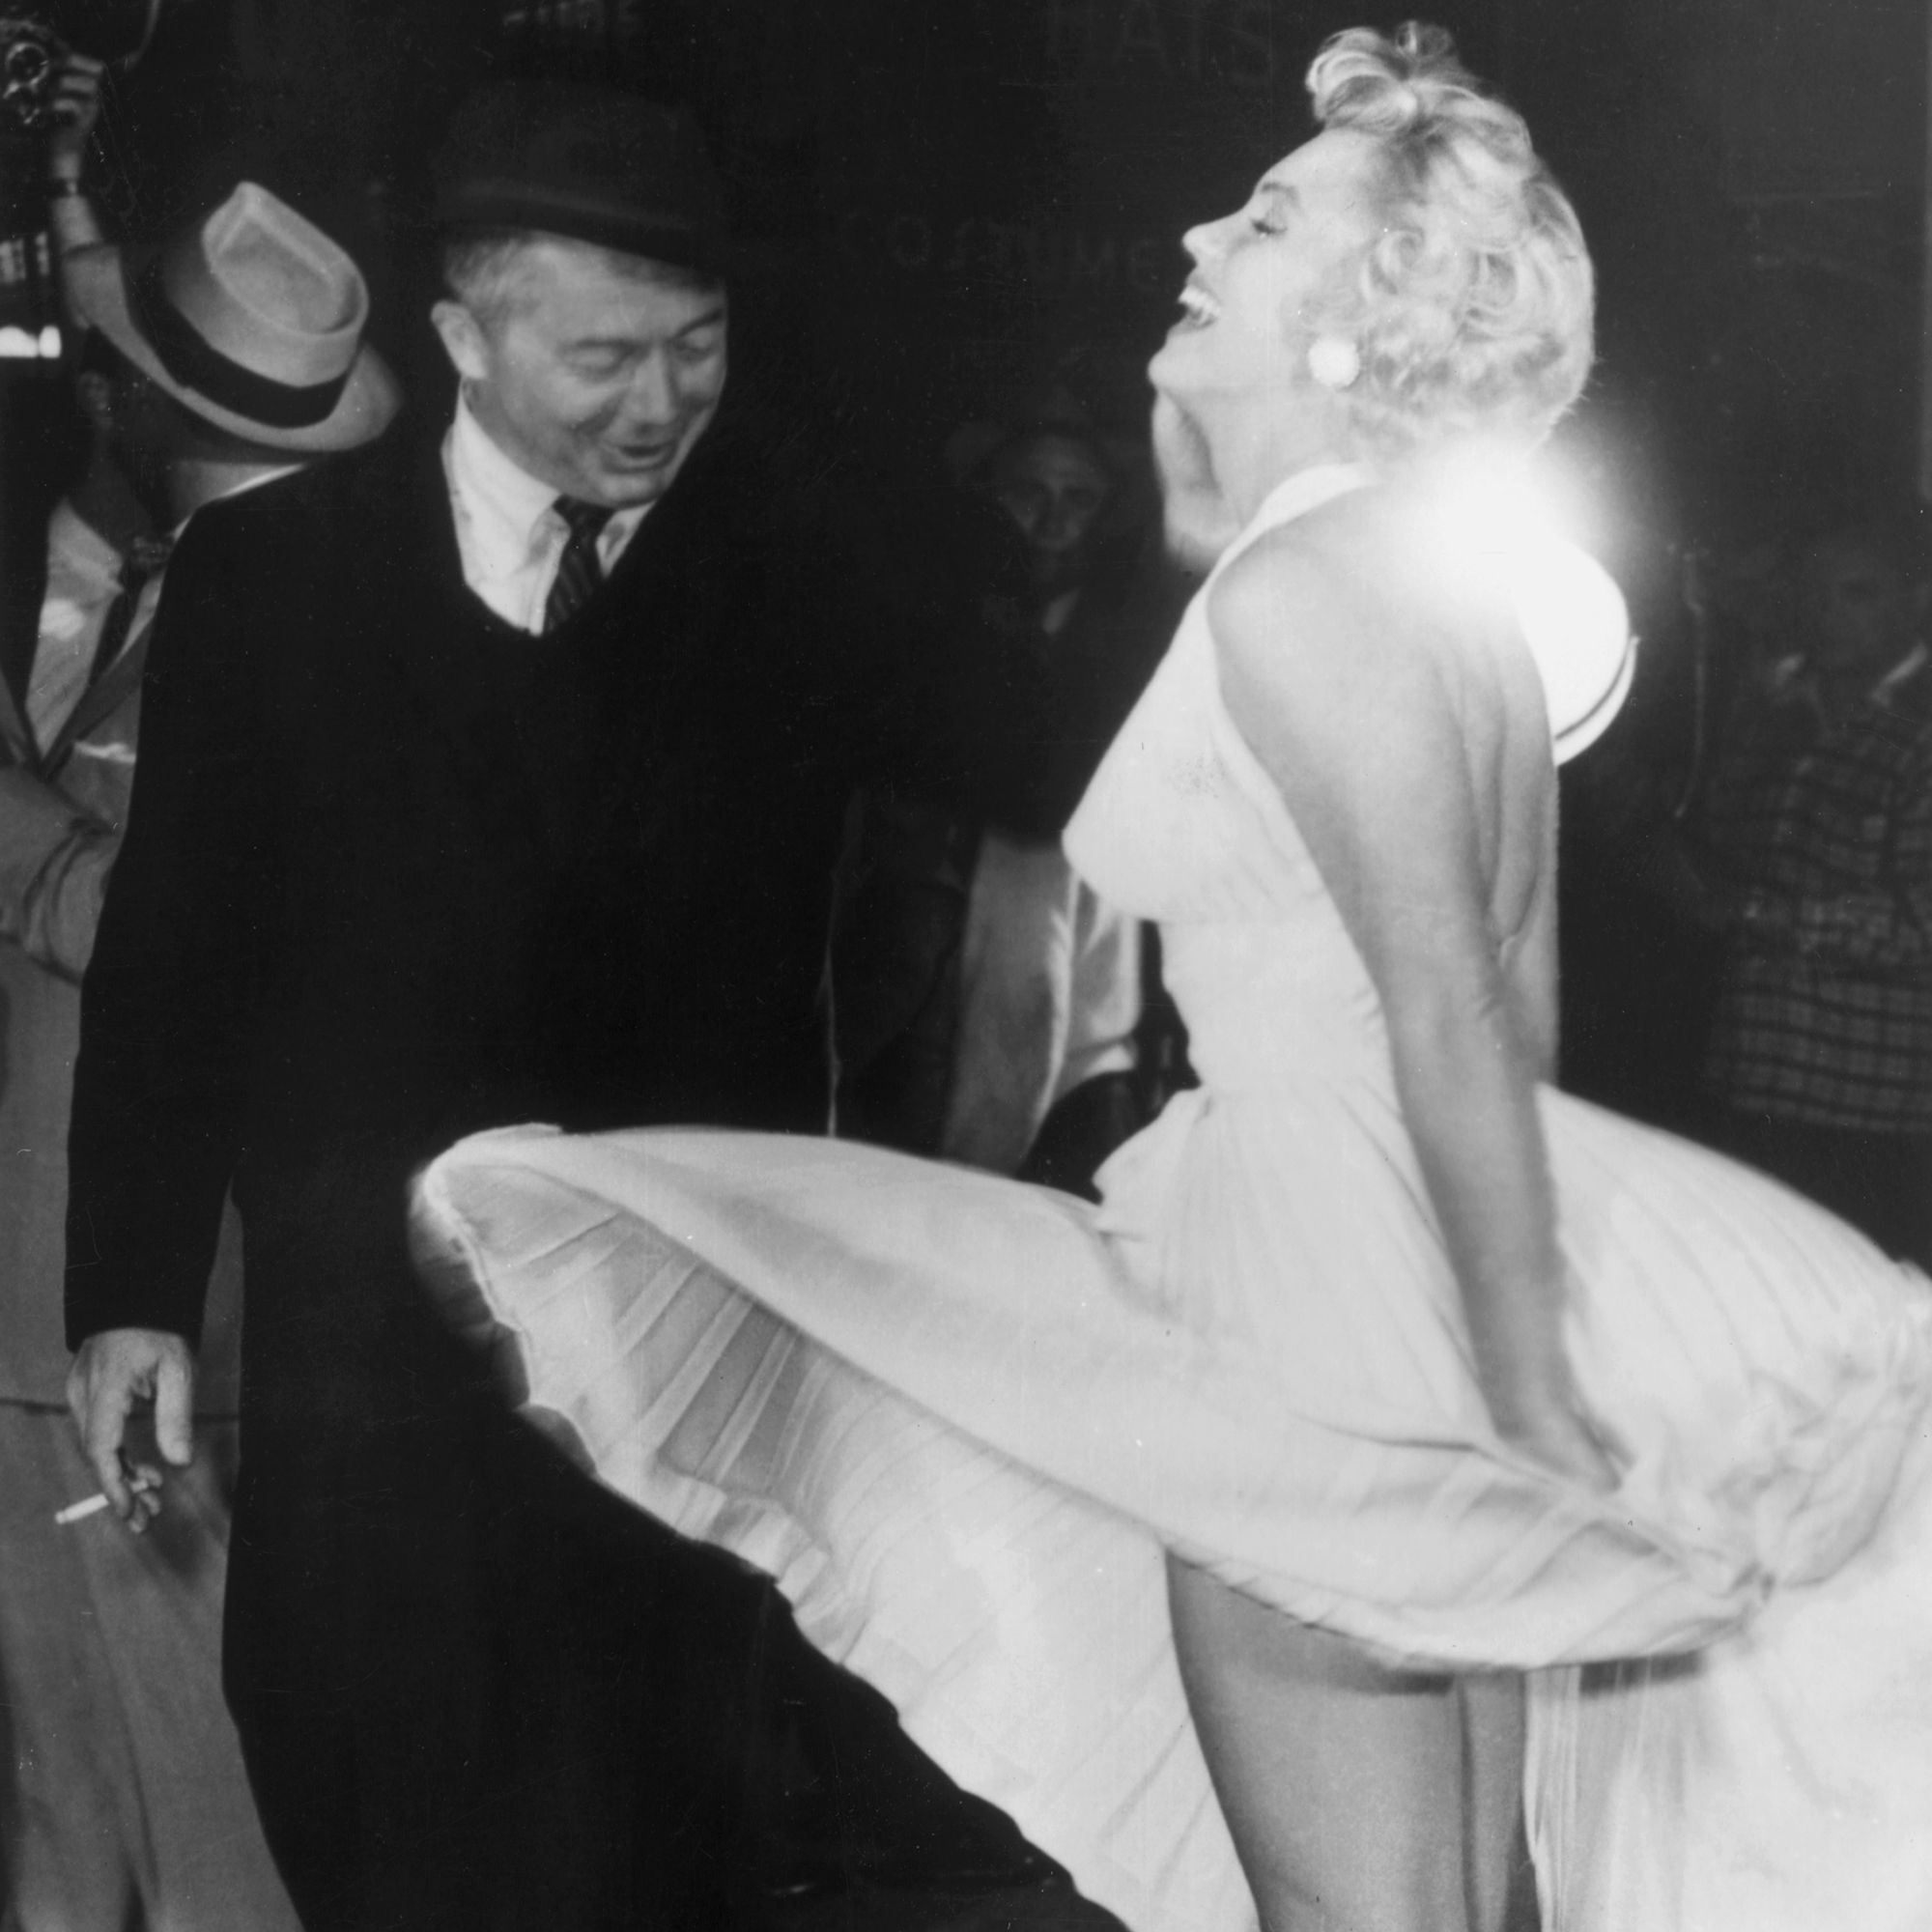 1955:  American actor Marilyn Monroe stands on a subway grate and laughs as the wind blows the skirt of her white halter dress next to Austrian-born director Billy Wilder (1906 - 2002) on the set of Wilder's film, 'The Seven Year Itch' Times Square, New York City.  (Photo by Hulton Archive/Getty Images)